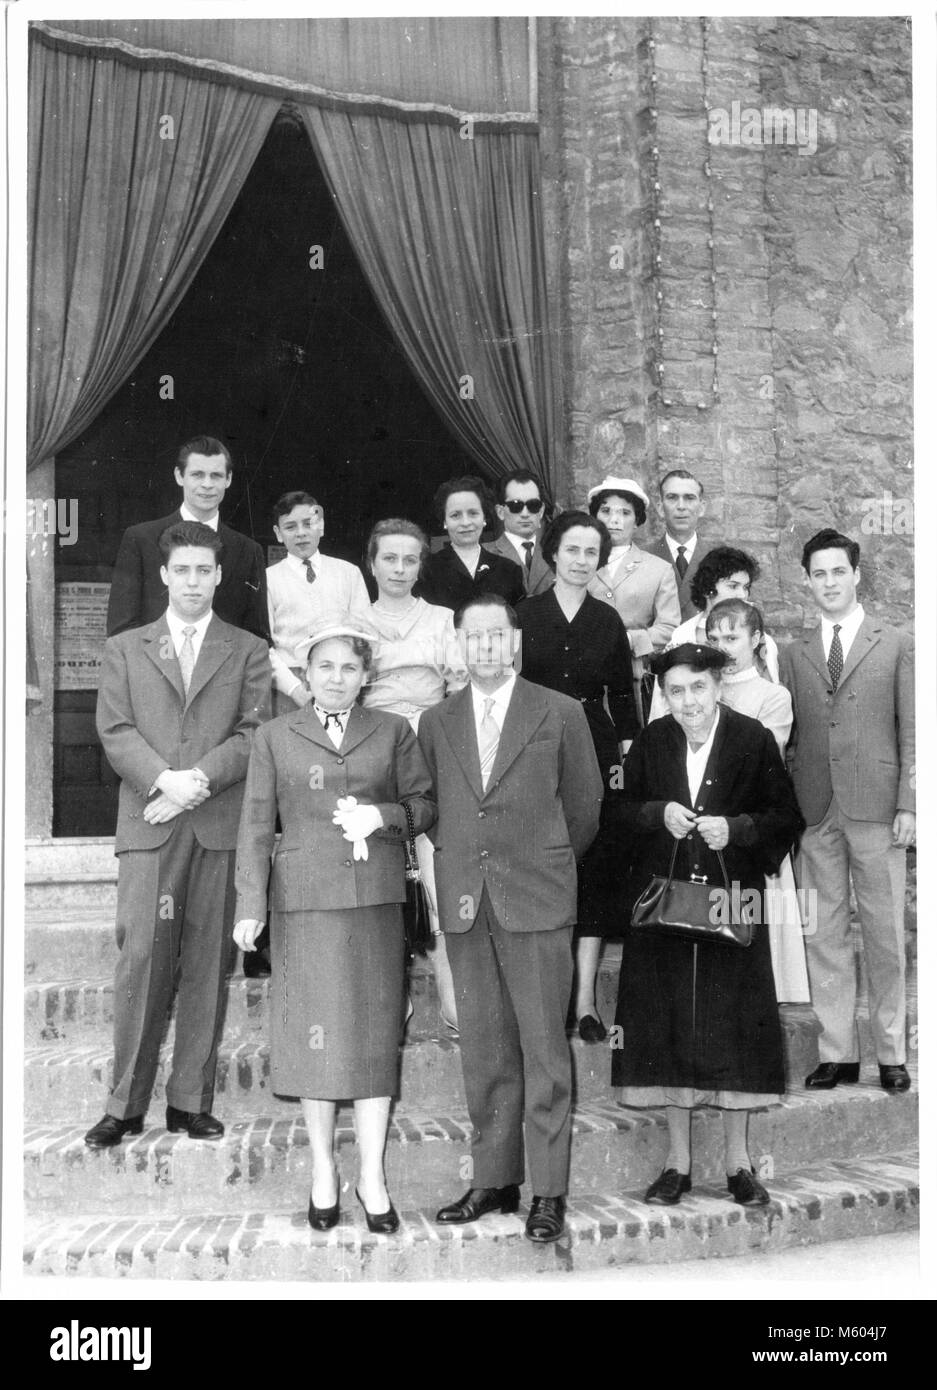 1960s 1970s wedding caucasian relatives outside the church ceremony. Black and white shot. Italy - Stock Image